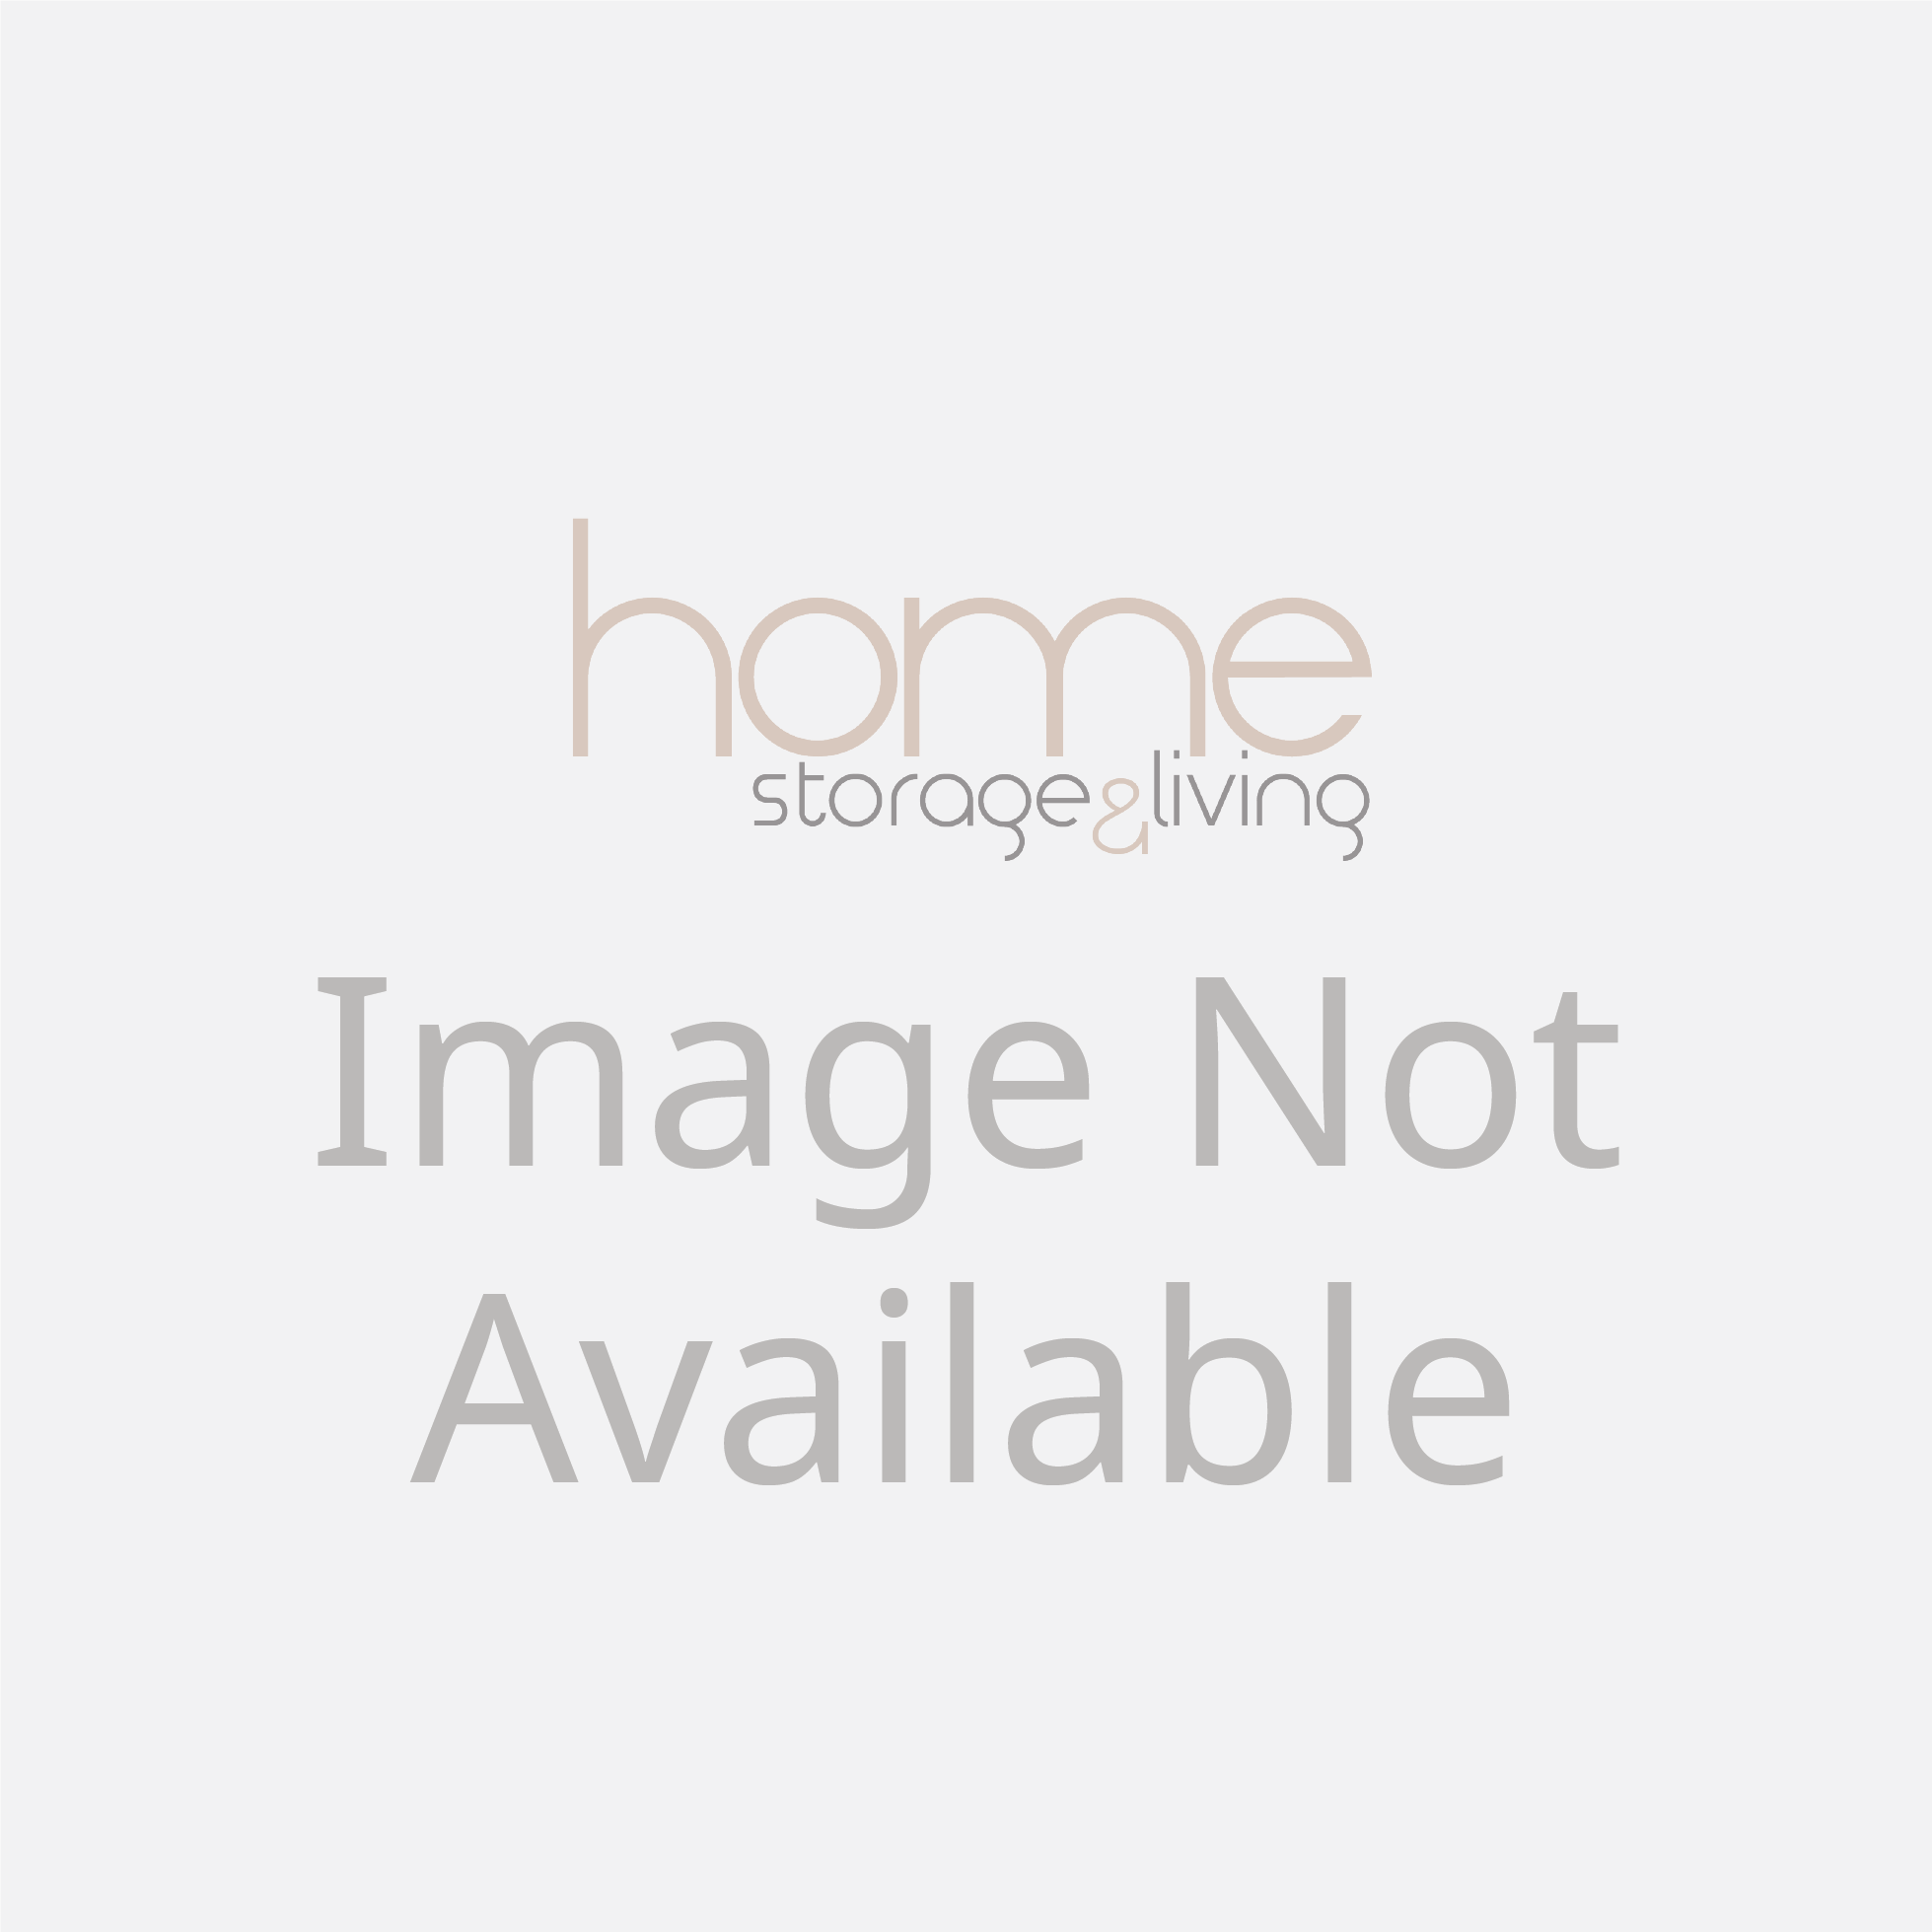 Wooden Bedside Table with Drawer | Furniture | Home Storage & Living